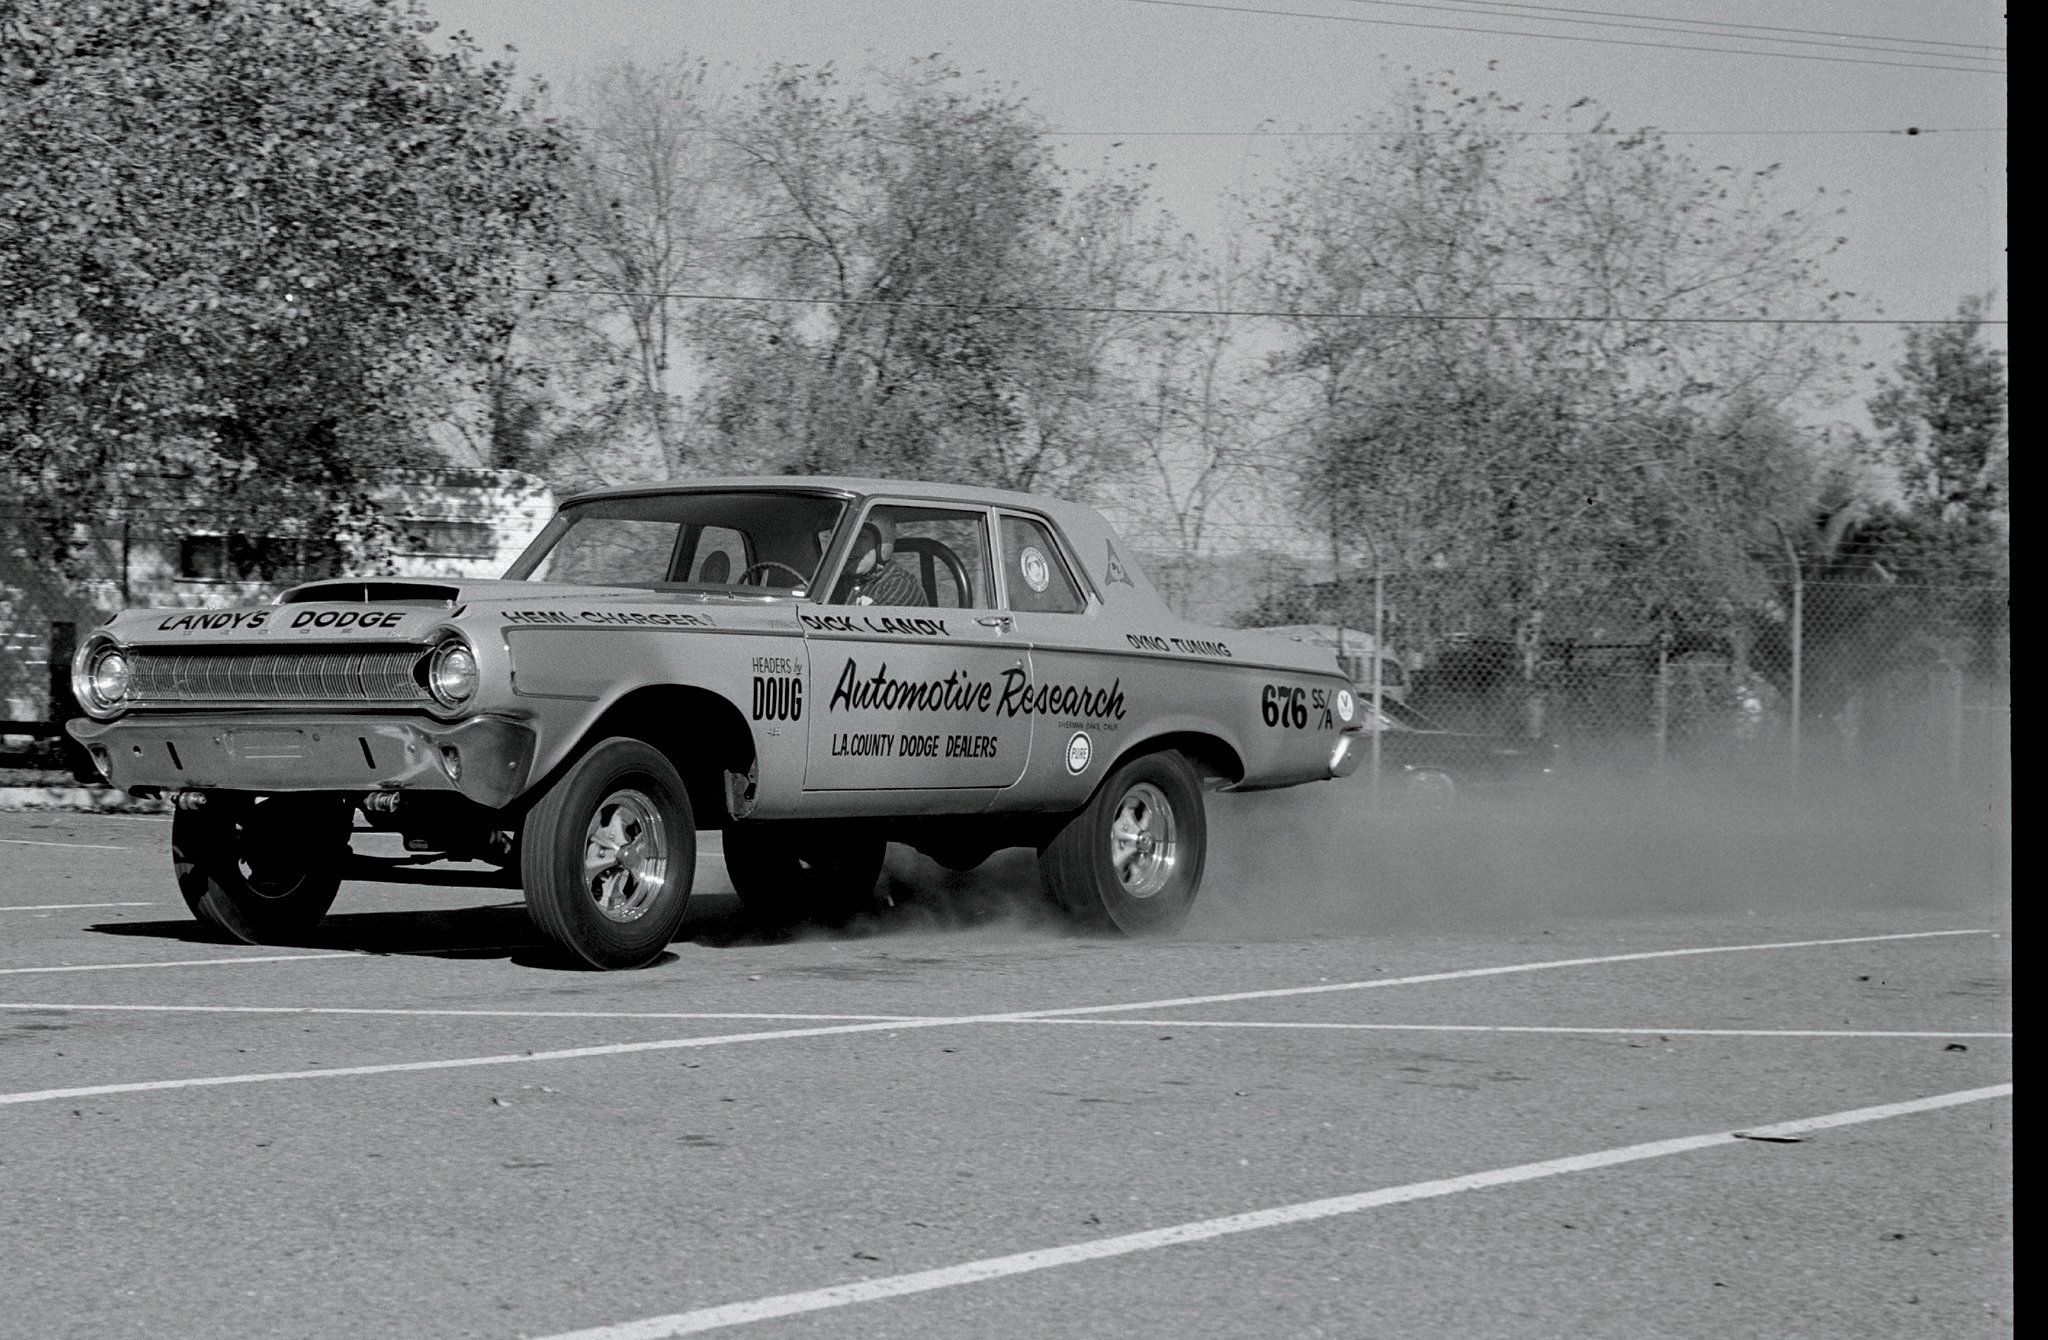 """One of the last film rolls that Eric Rickman exposed this year actually does reveal an early Funny Car. In fact, some folks insist that the relocated axles under Dick Landy's converted S/S and A/MP '64 Dodge qualify this as the first Funny. Guided by blueprints from factory Ramchargers engineers, Landy's Automotive Research finished the job in time to cash in on lucrative late-season match races in the Southeast. Back home in November, Dandy Dick clocked 146.57 (!) mph and won Top Production Eliminator at the same Riverside half-mile meet that produced the preceding Burke & Chastain photo. In mid-December, Rick captured what's likely this car's last burnout, ever, in a San Fernando Valley parking lot. Within weeks, it would be replaced by one of the dozen """"funny-looking"""" '65 Mopars that revolutionized drag racing—as we'll see in the next installment of this series (May '15 HRD)."""